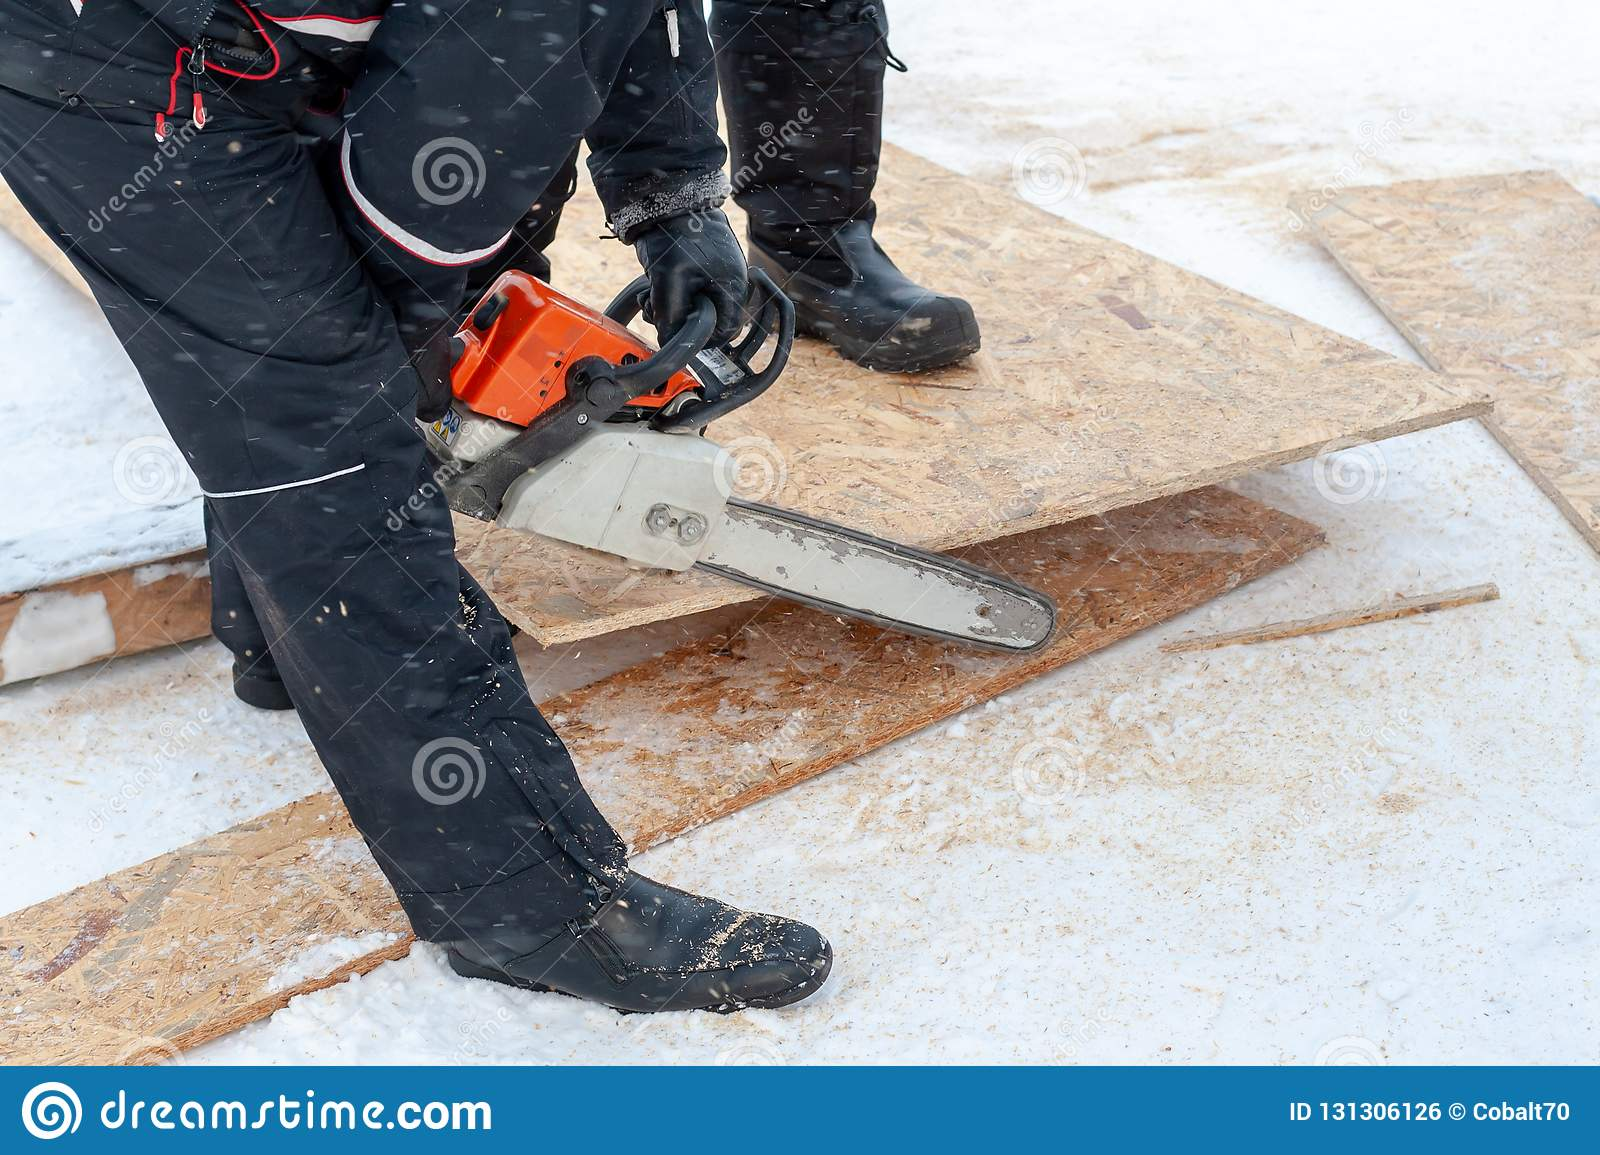 A man chainsaw sawing a wooden panel on a winter day on a background of snow